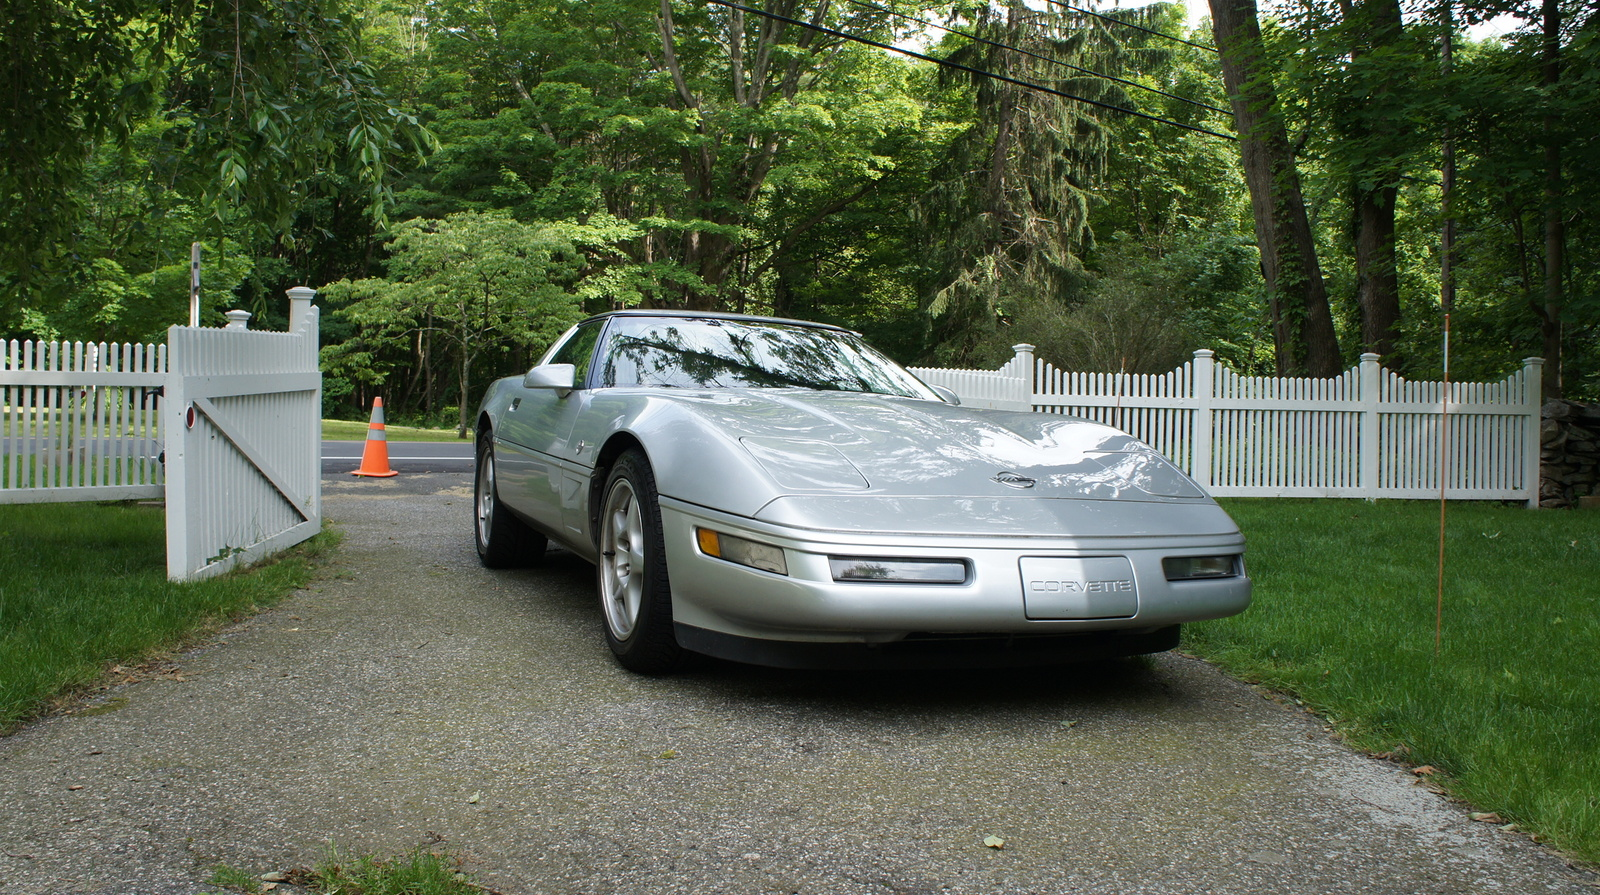 1996 Chevrolet Corvette Coupe, Picture of 1996 Chevrolet Corvette 2 Dr STD Hatchback, exterior